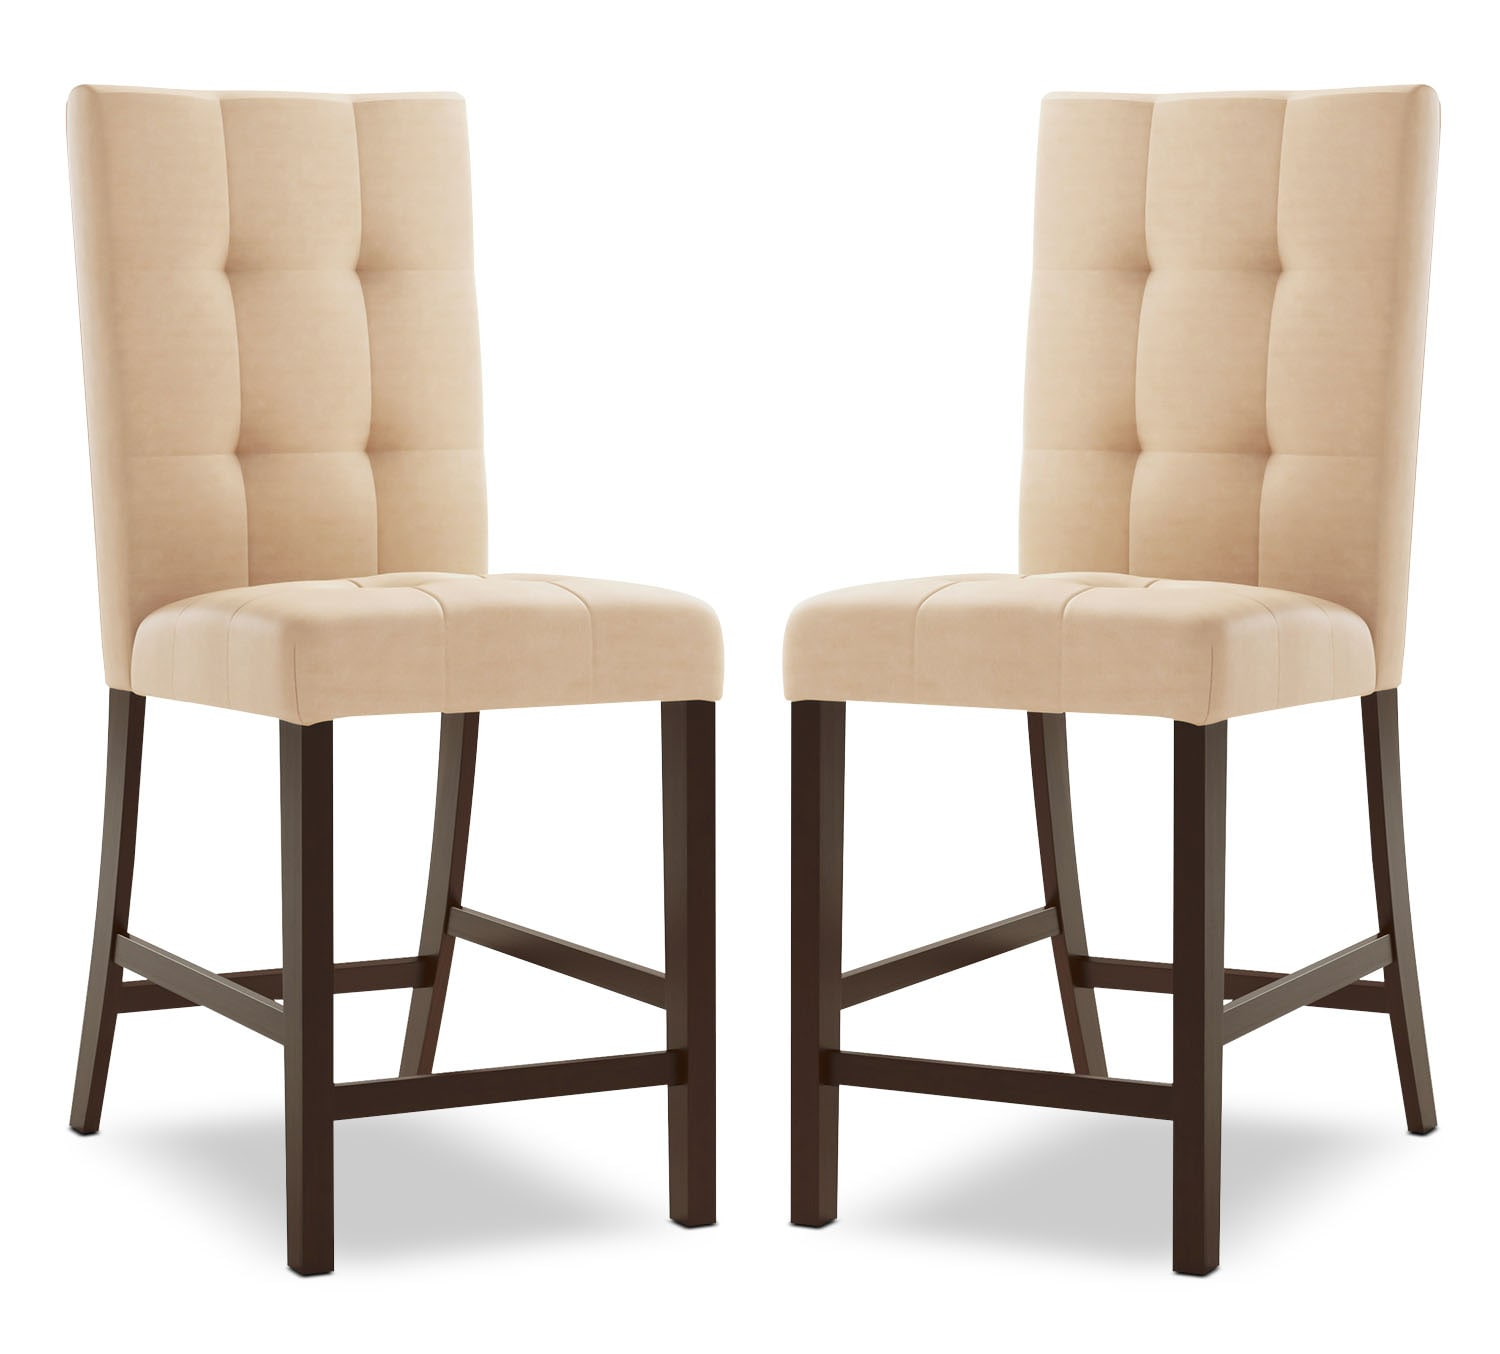 Bistro Square-Tufted Counter-Height Dining Chair, Set of 2 – Desert Sand